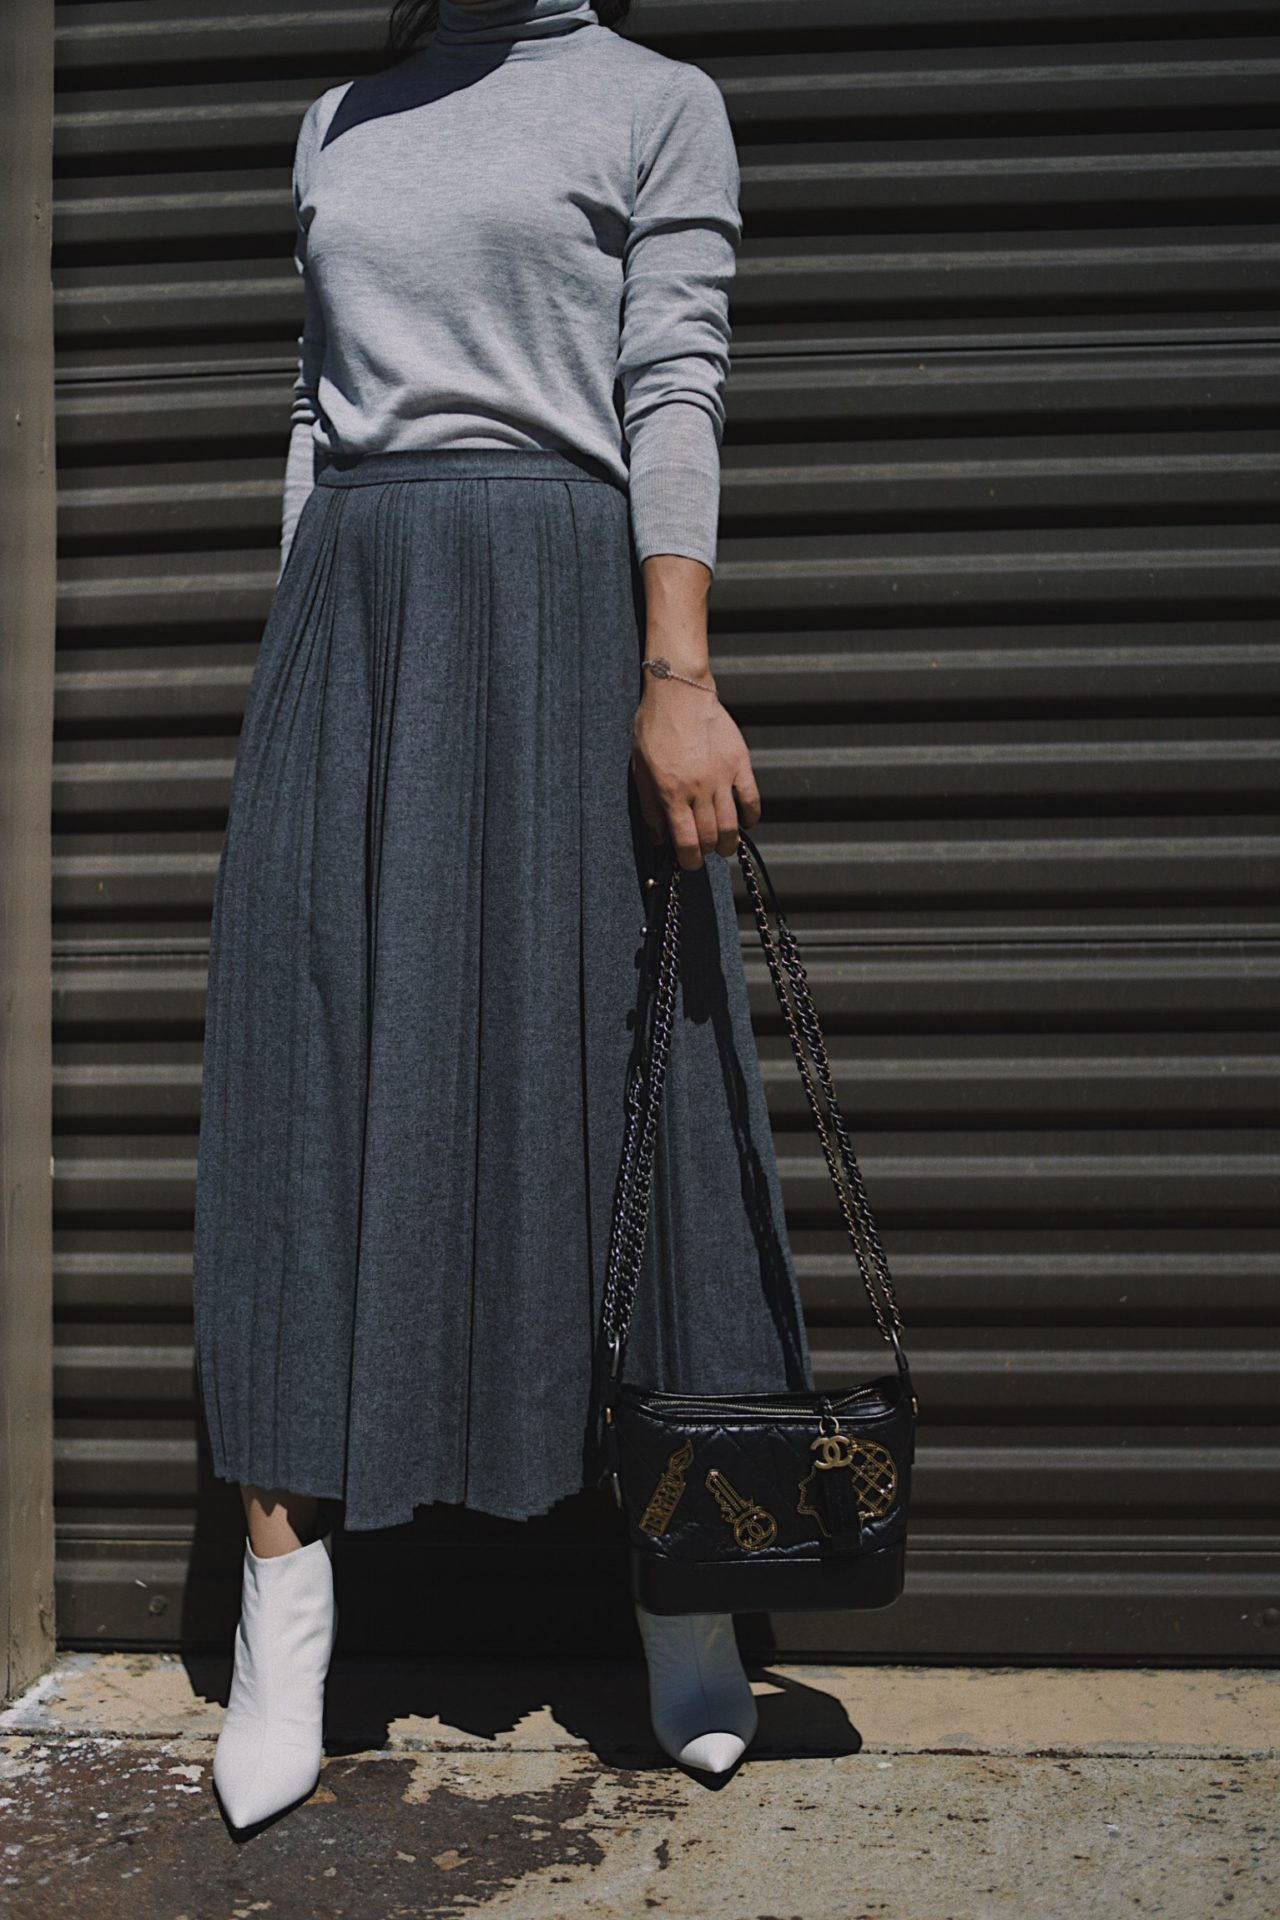 How to Wear Pleated Skirt This Season